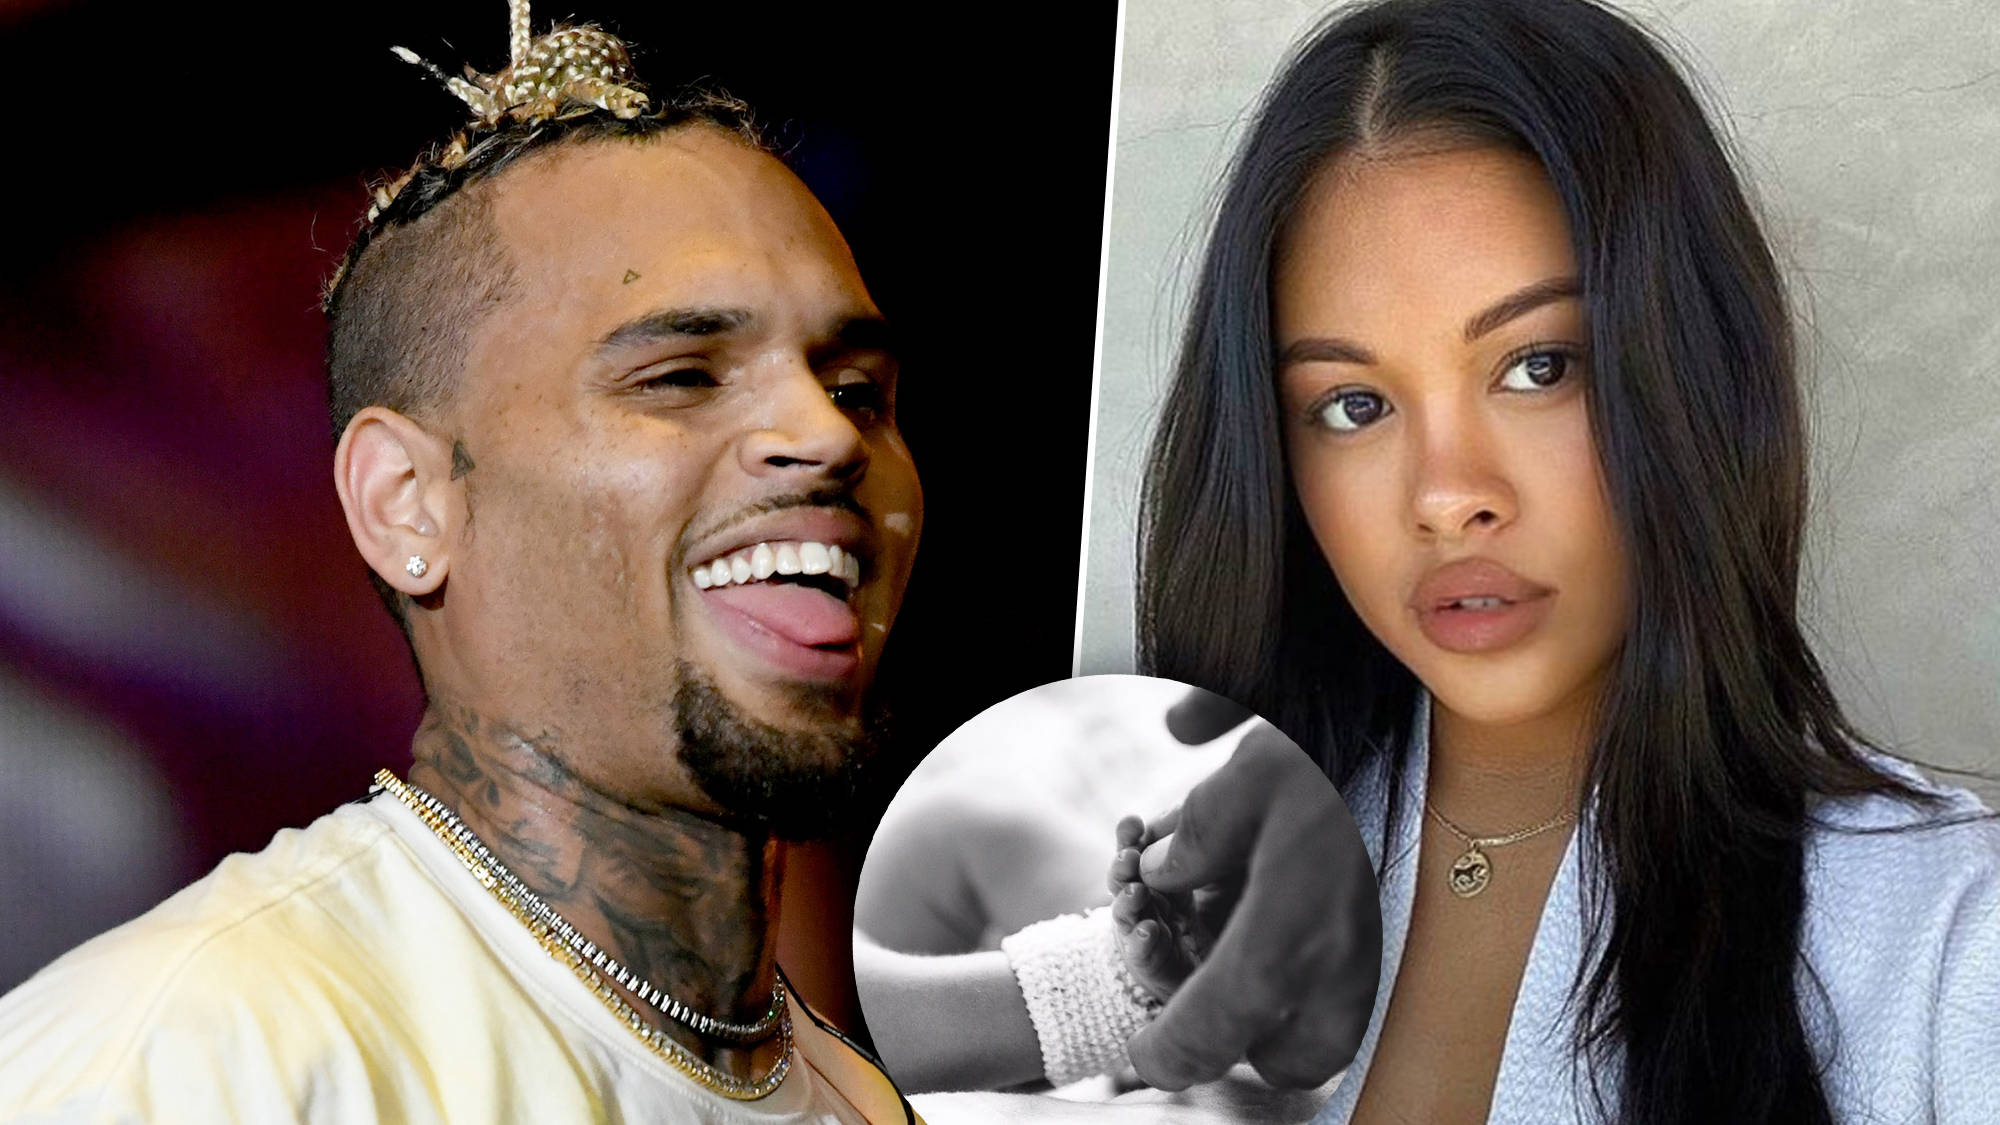 Chris Brown shares sultry throwback maternity snap of model ex Ammika Harris